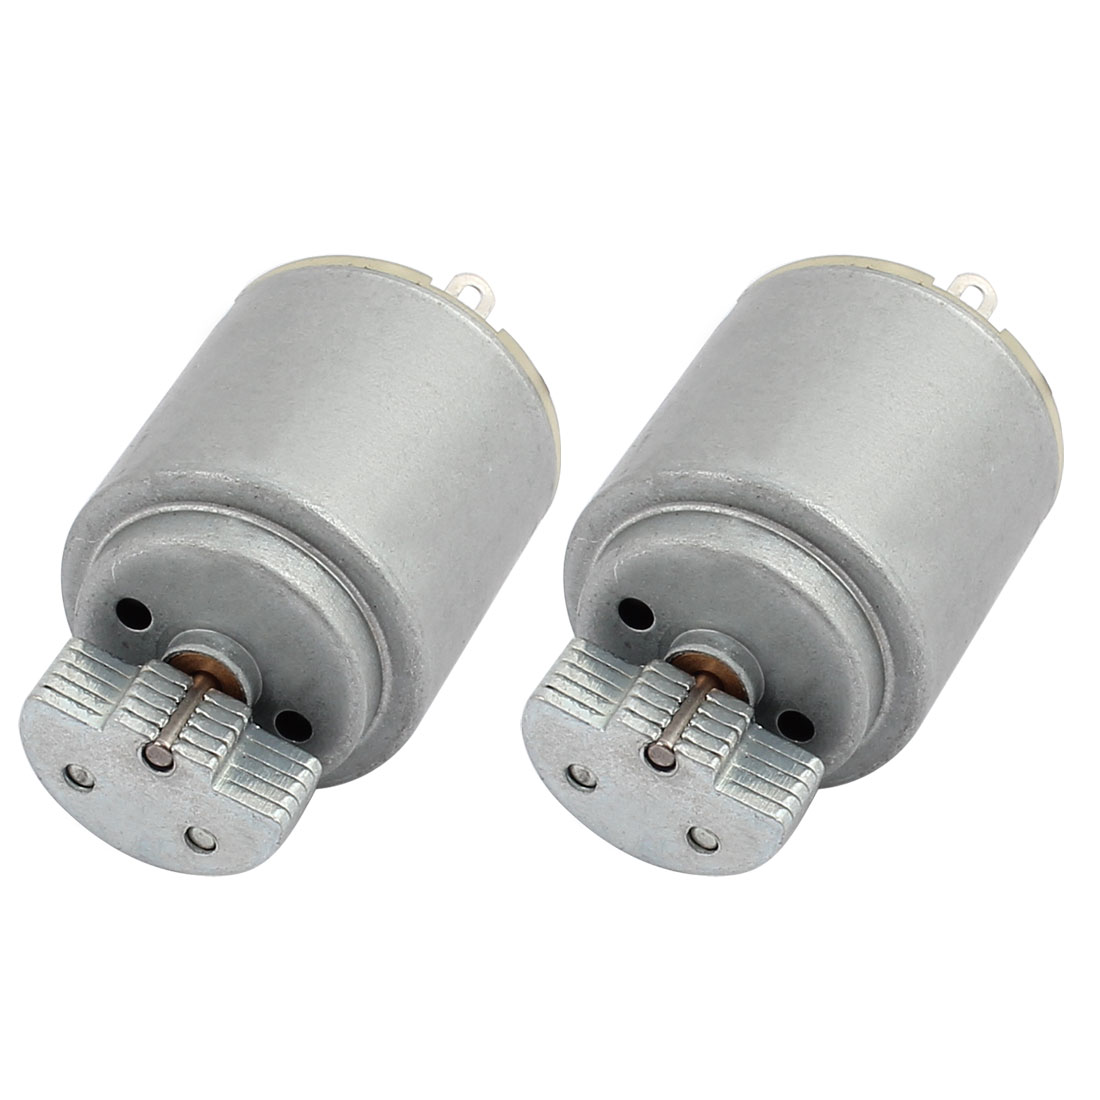 2Pcs DC 3V 3000RPM Rotary Speed Electric Vibration Mini Motor for DIY Model Toy